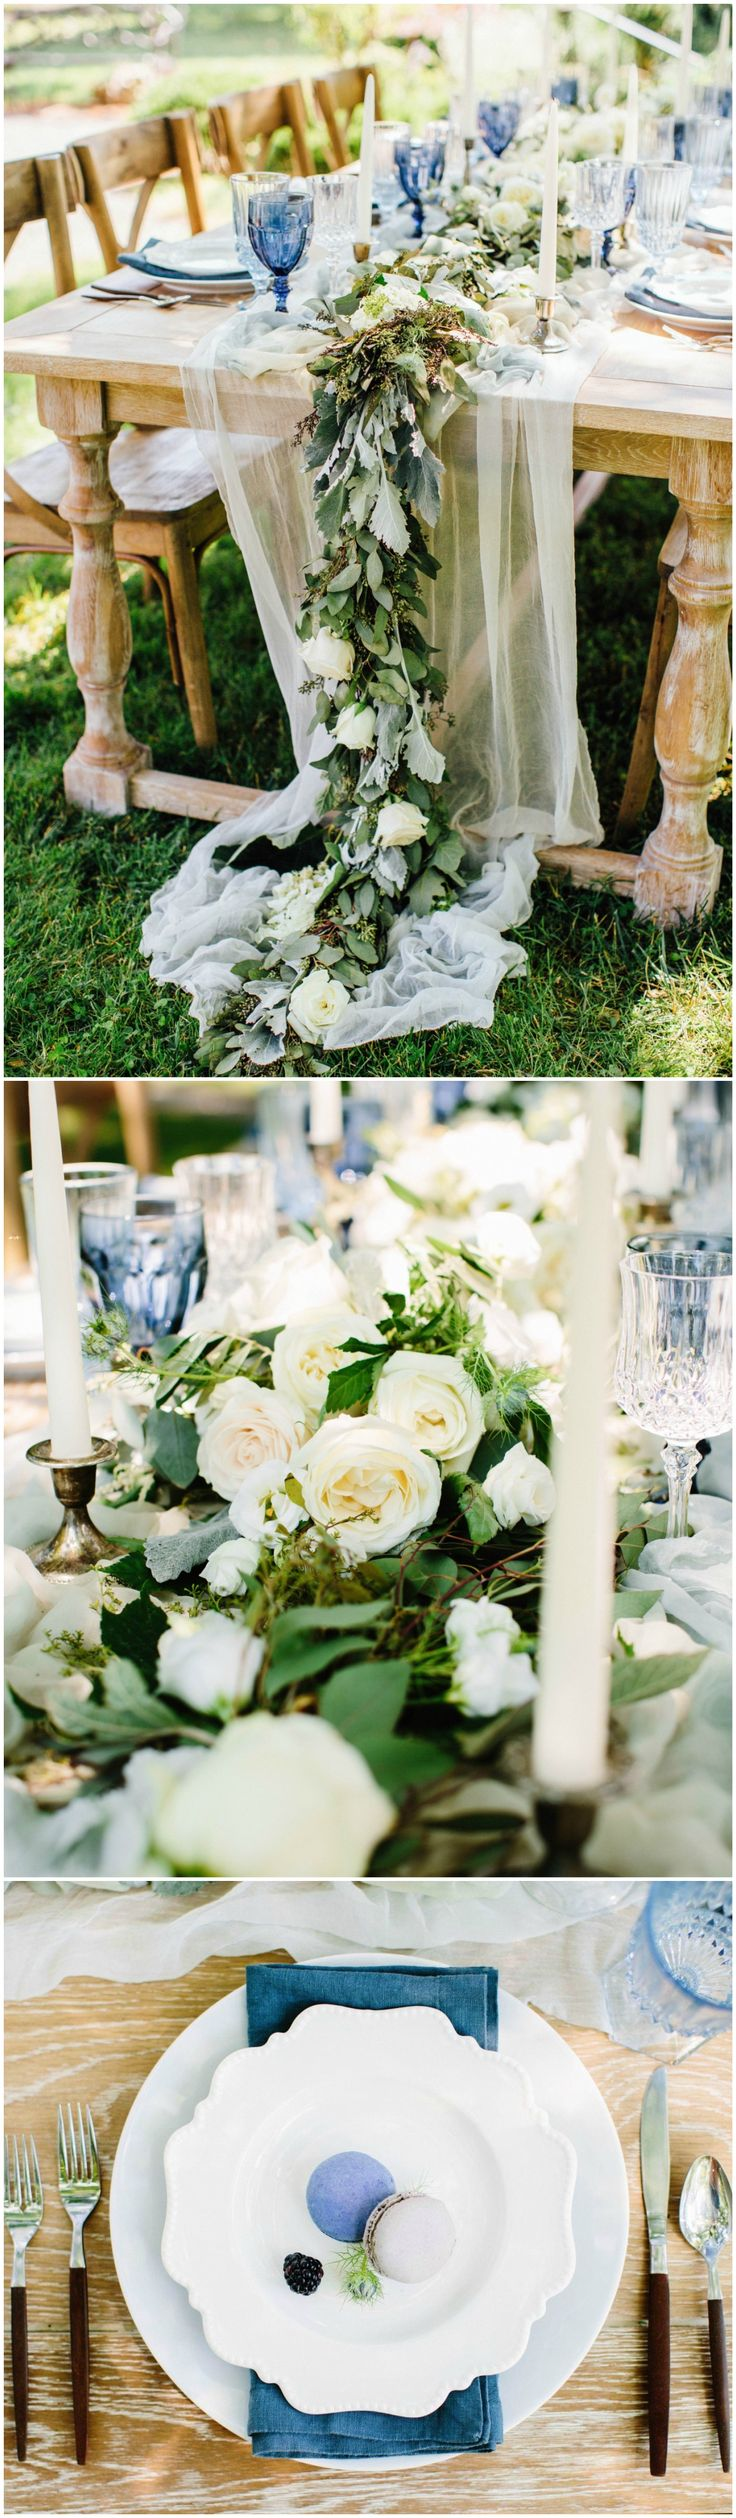 Greek Table Setting Decorations 17 Best Ideas About Greek Wedding Theme On Pinterest The Runner